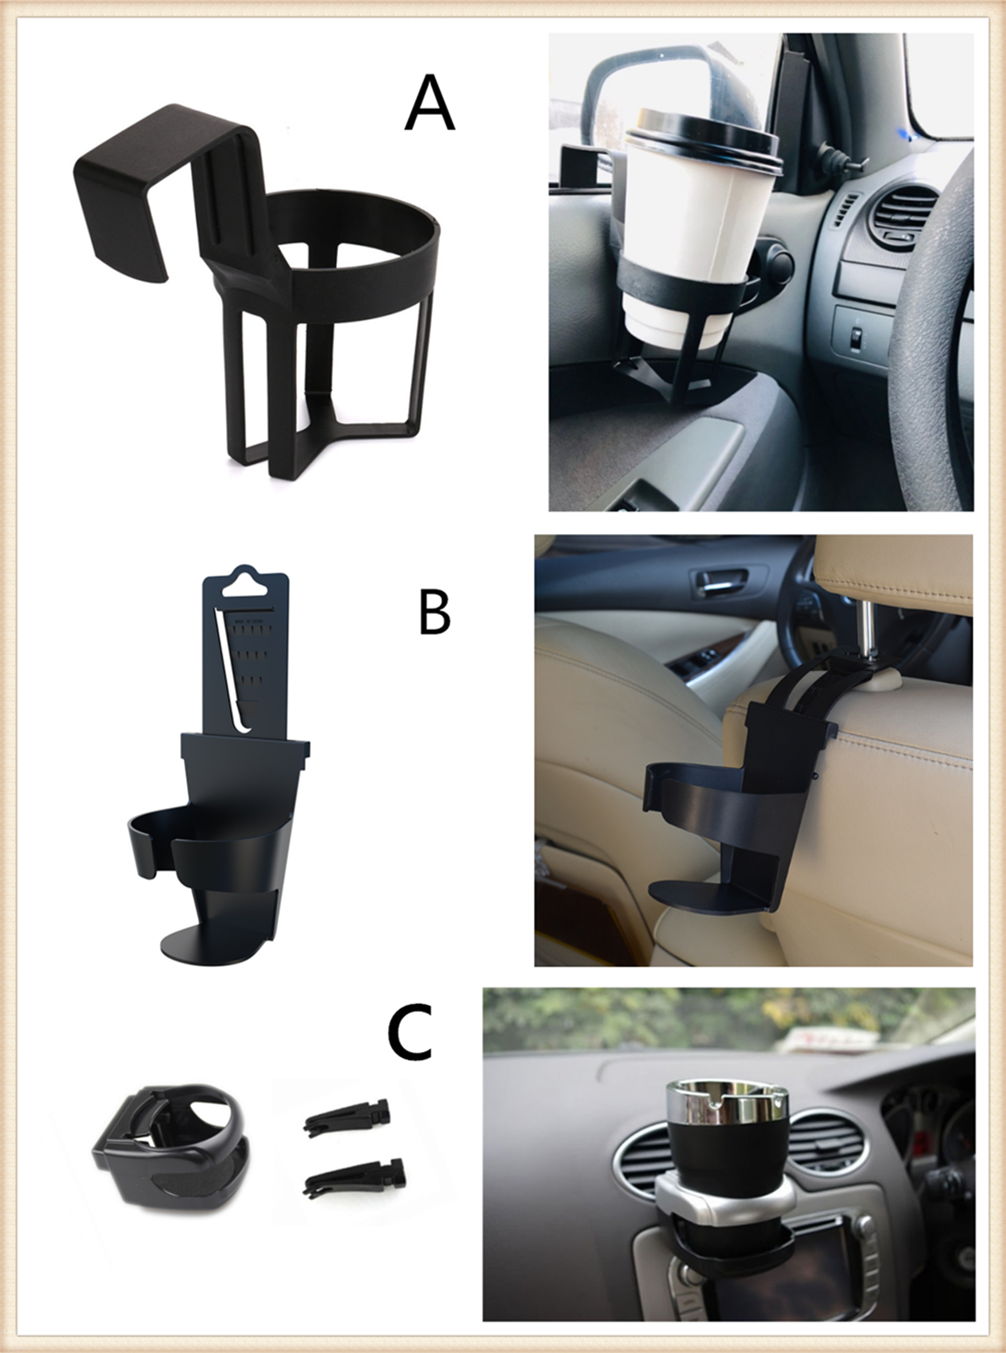 Large Caliber Designed Cup Holder,Rotation Cup Drink Holder for Car Air Conditioner Outlet